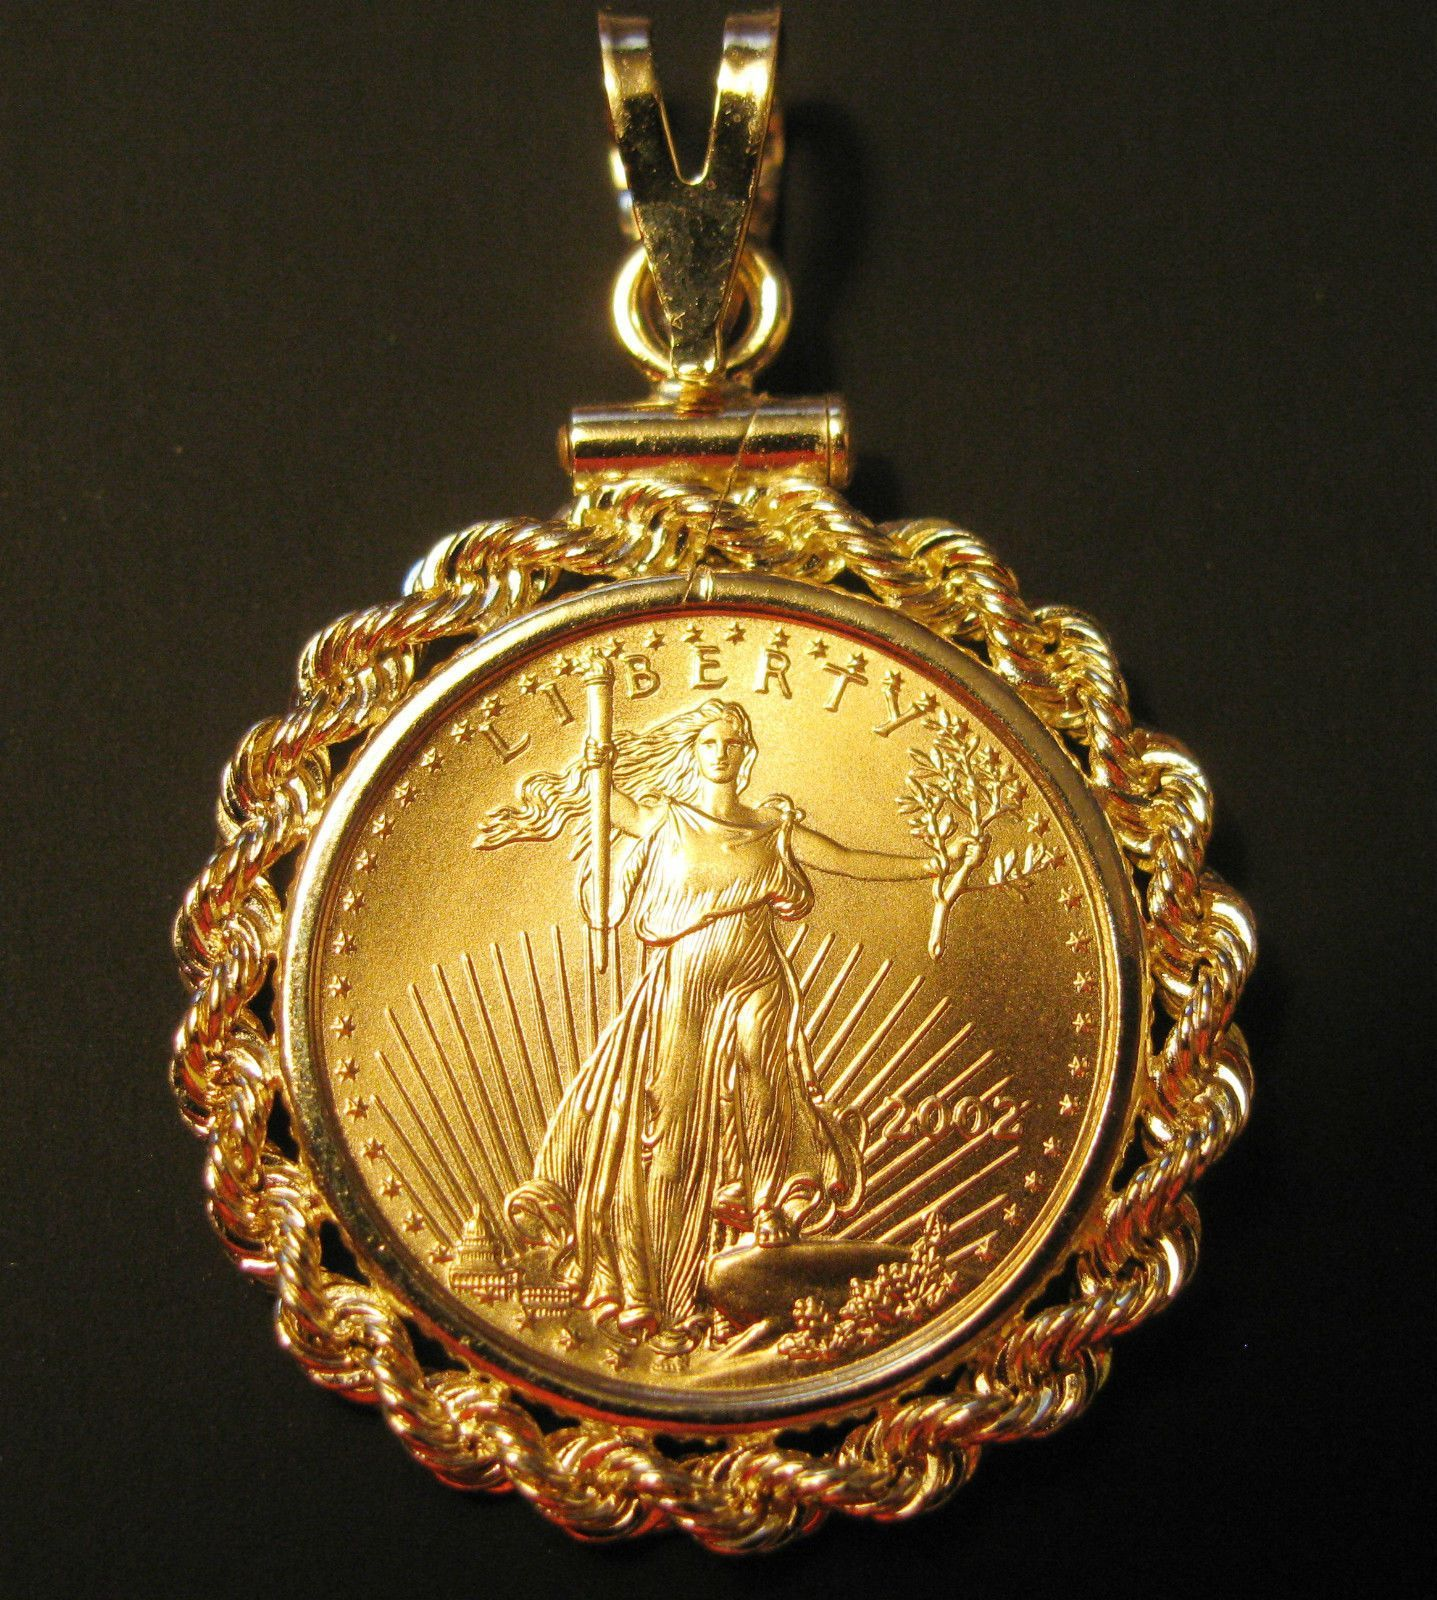 1 10 Oz American Eagle Gold Coin Pendant Solid 14k Bezel Made In The Usa Item Specifics Composition G Gold Eagle Coins American Eagle Gold Coin Gold Coins